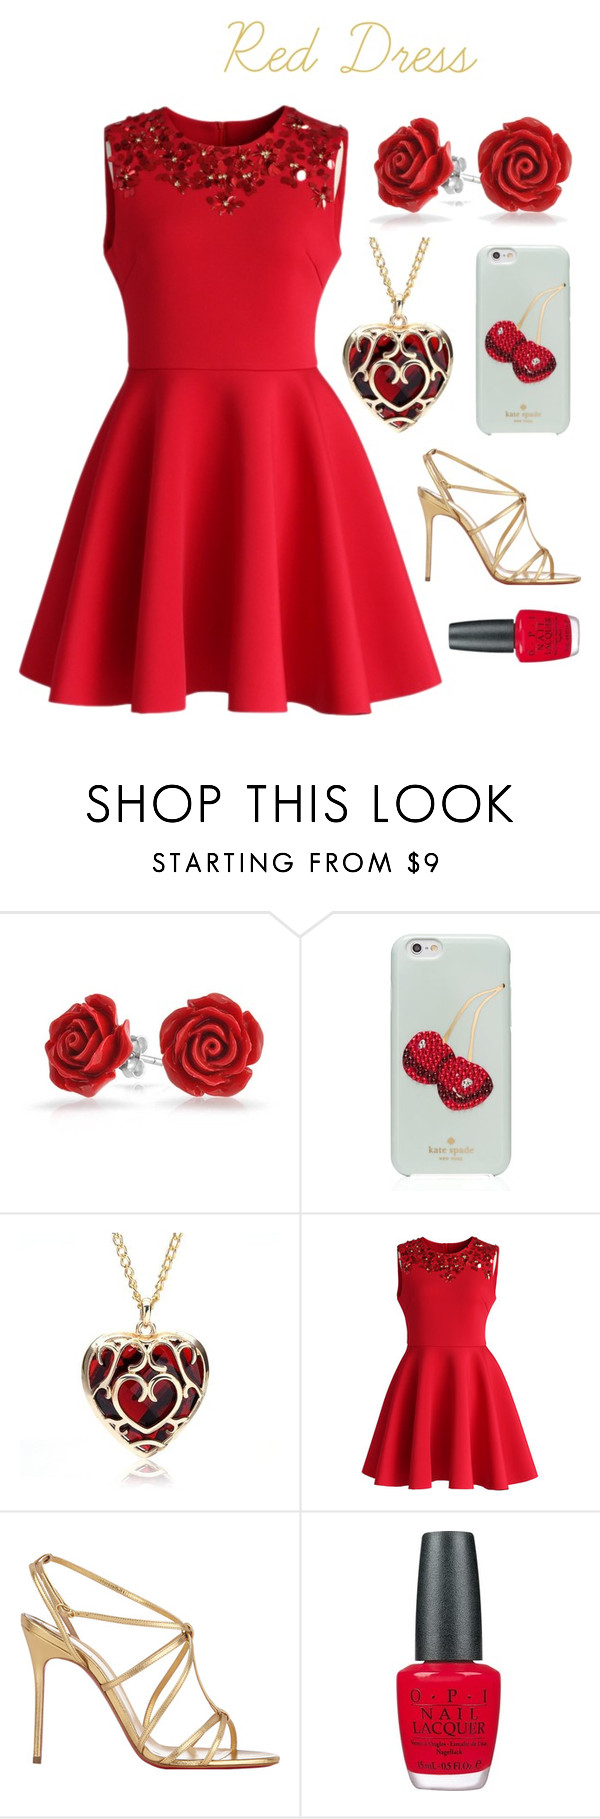 """Red Dress"" by oagraci ❤ liked on Polyvore featuring Bling Jewelry, Kate Spade, Chicwish, Christian Louboutin and OPI"